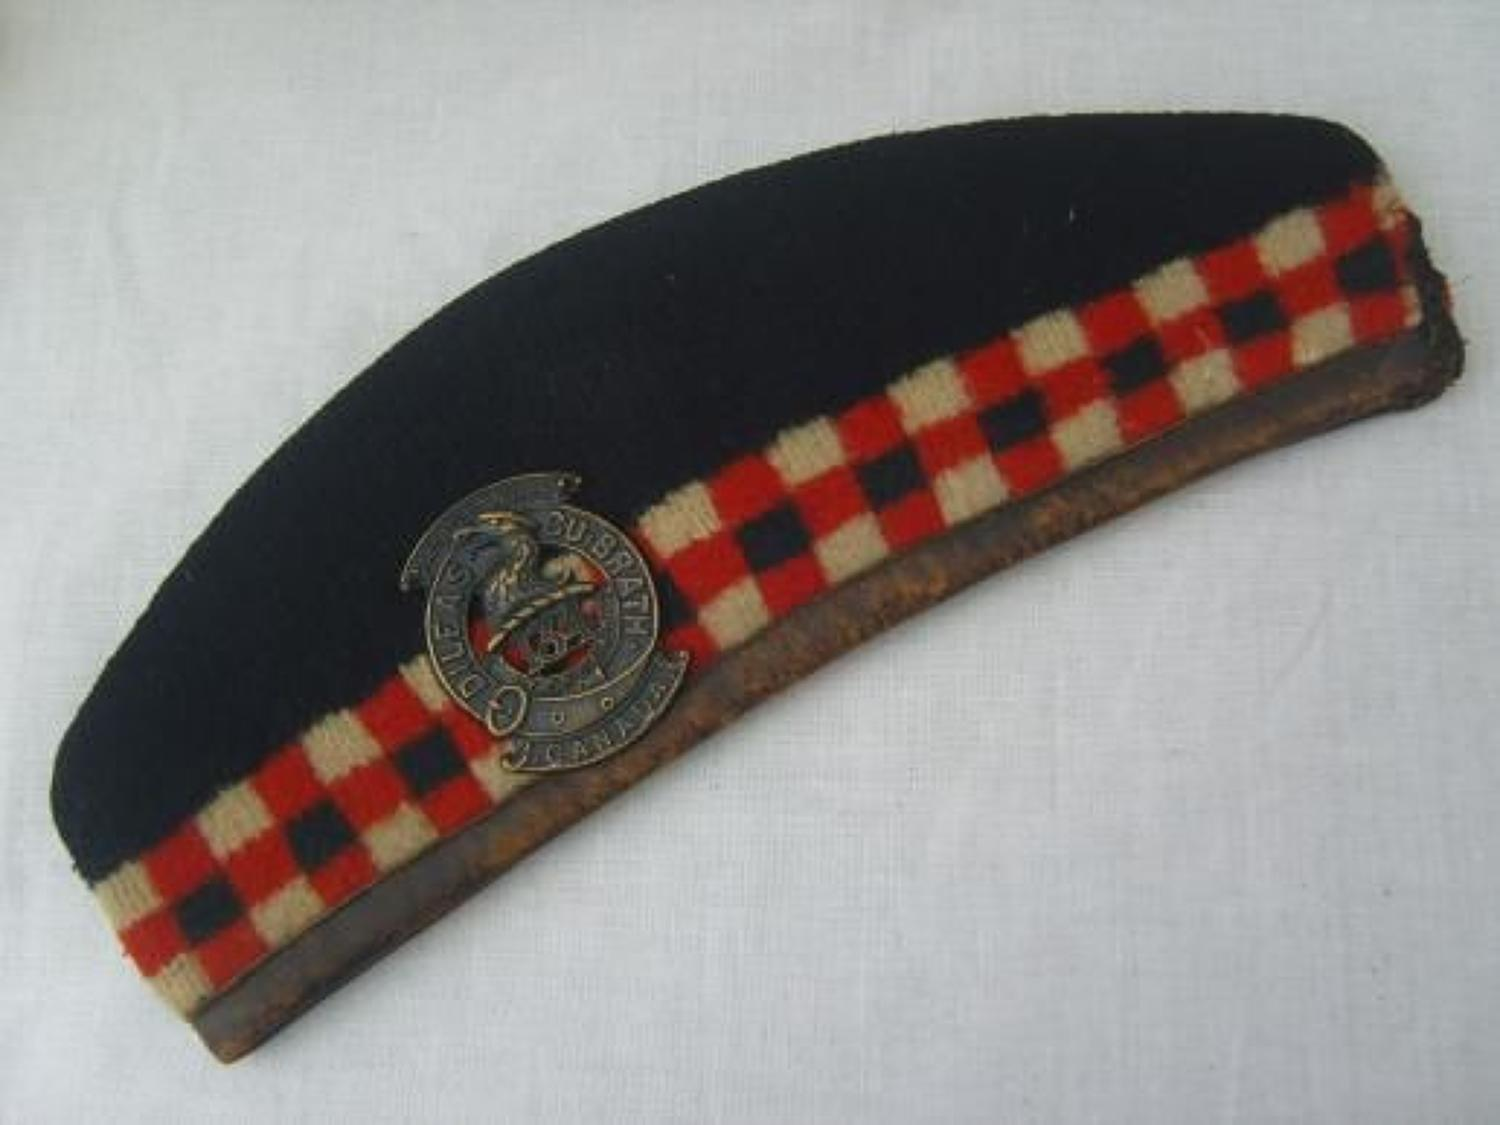 GLENGARRY; 134th BATTALIAN TORONTO HIGHLANDERS